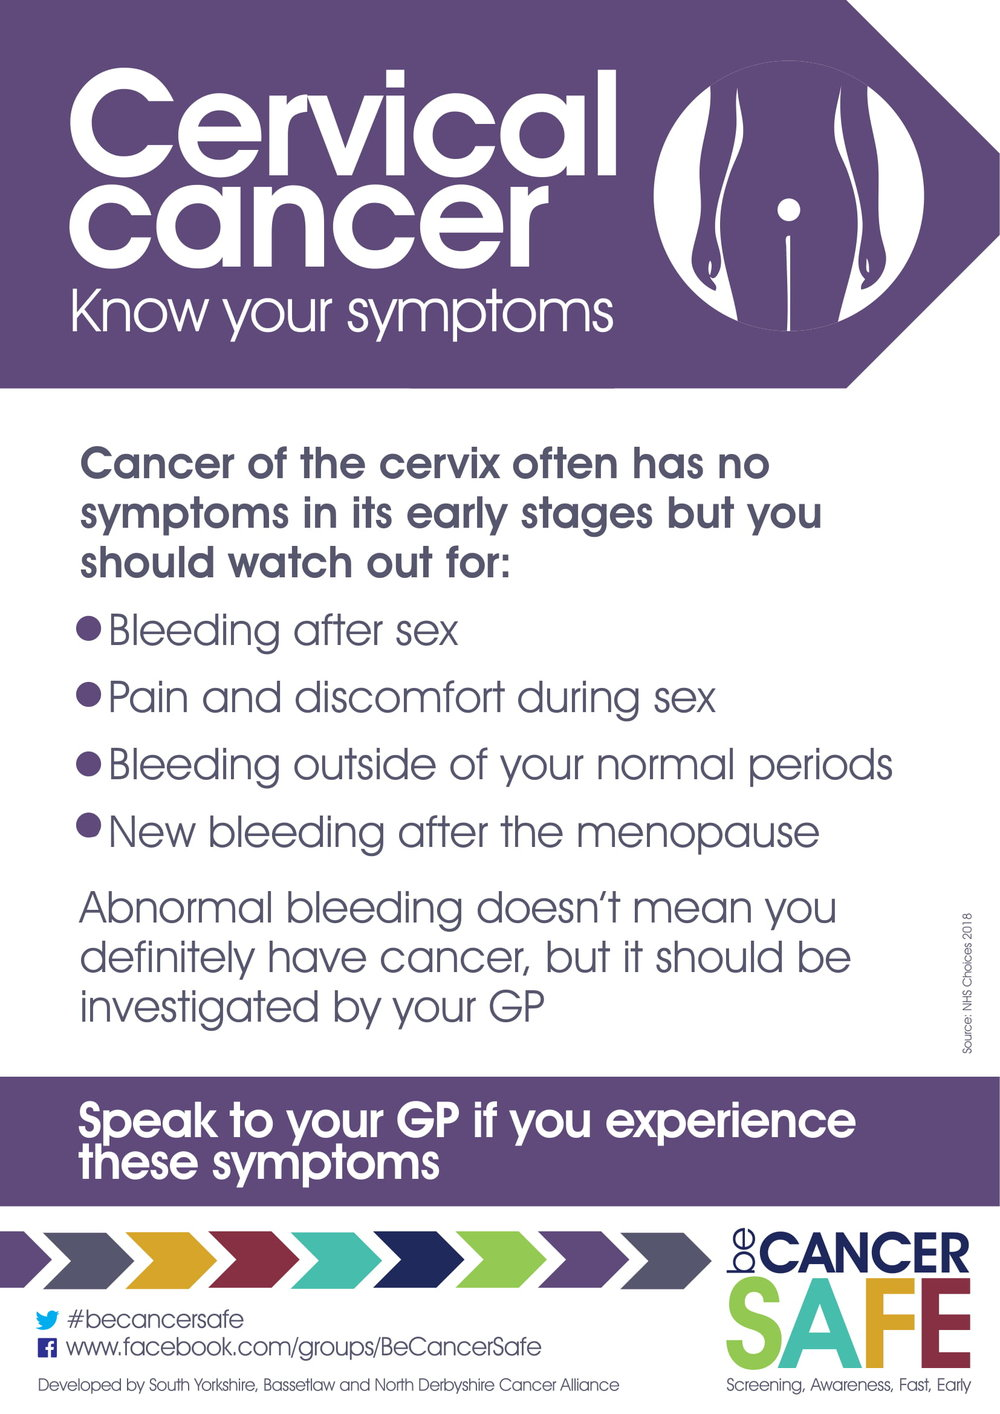 cervical_cancer_poster_copy-1.jpg